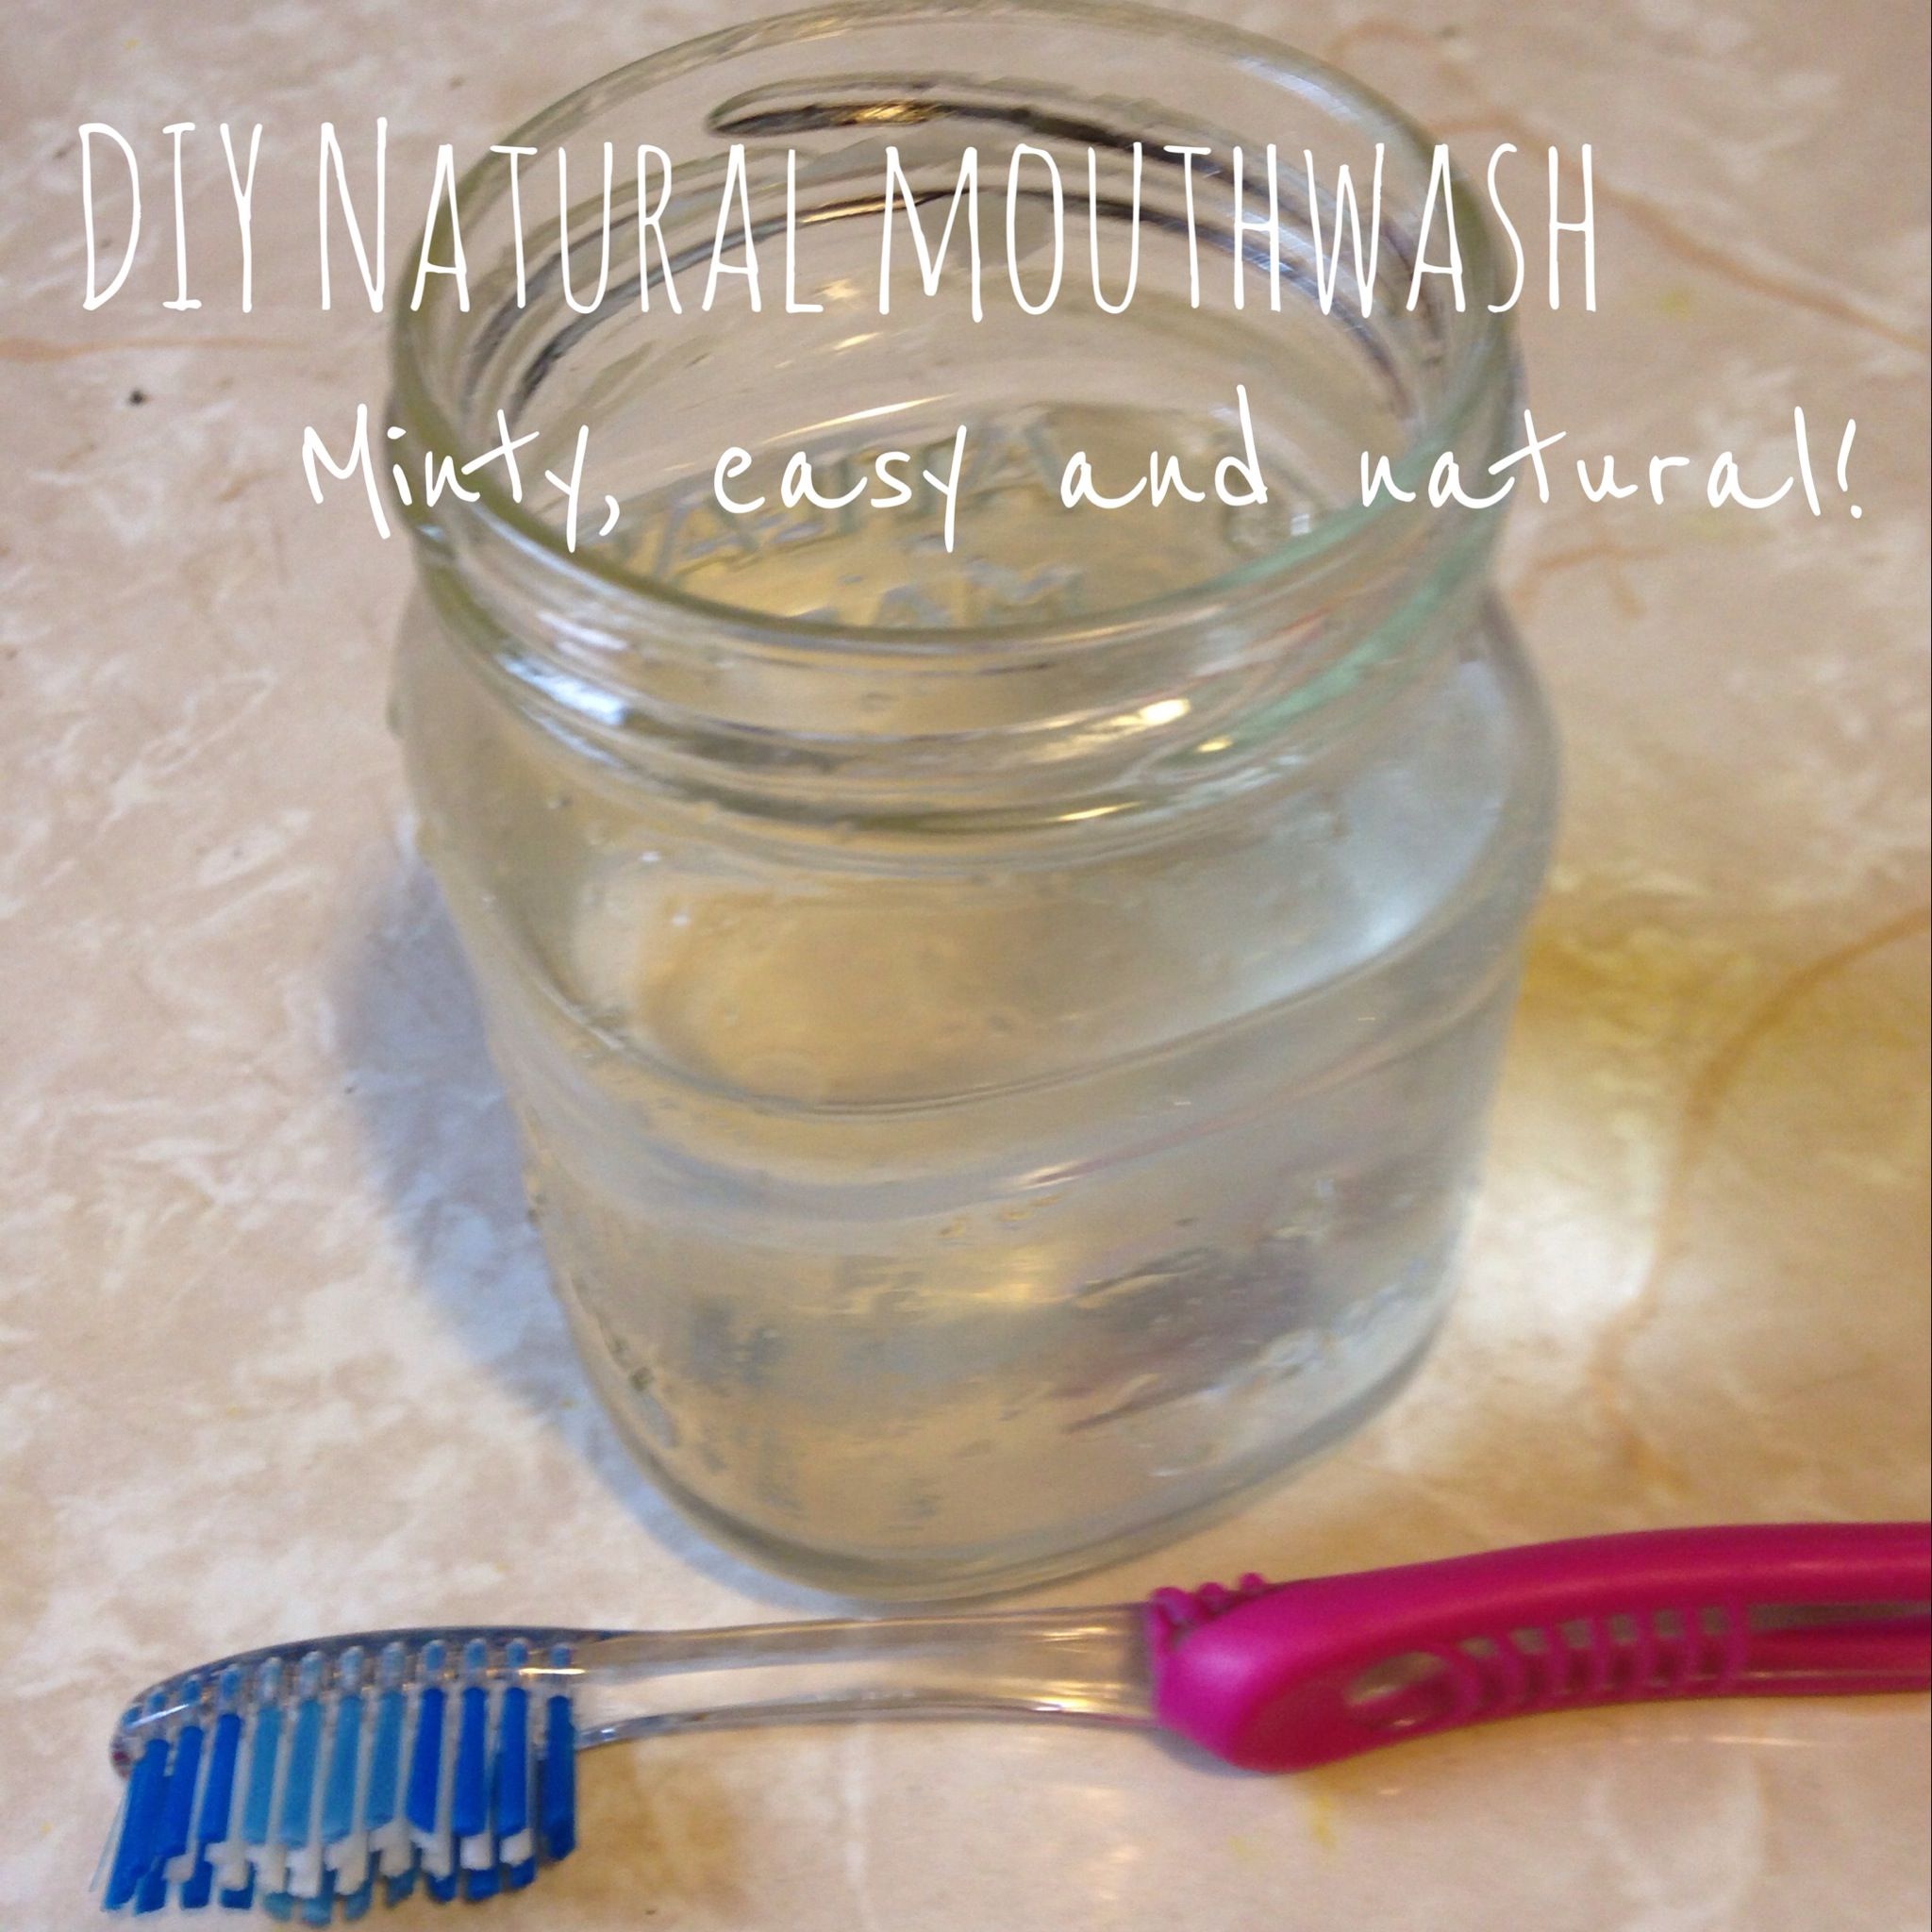 DIY Natural Mouthwash